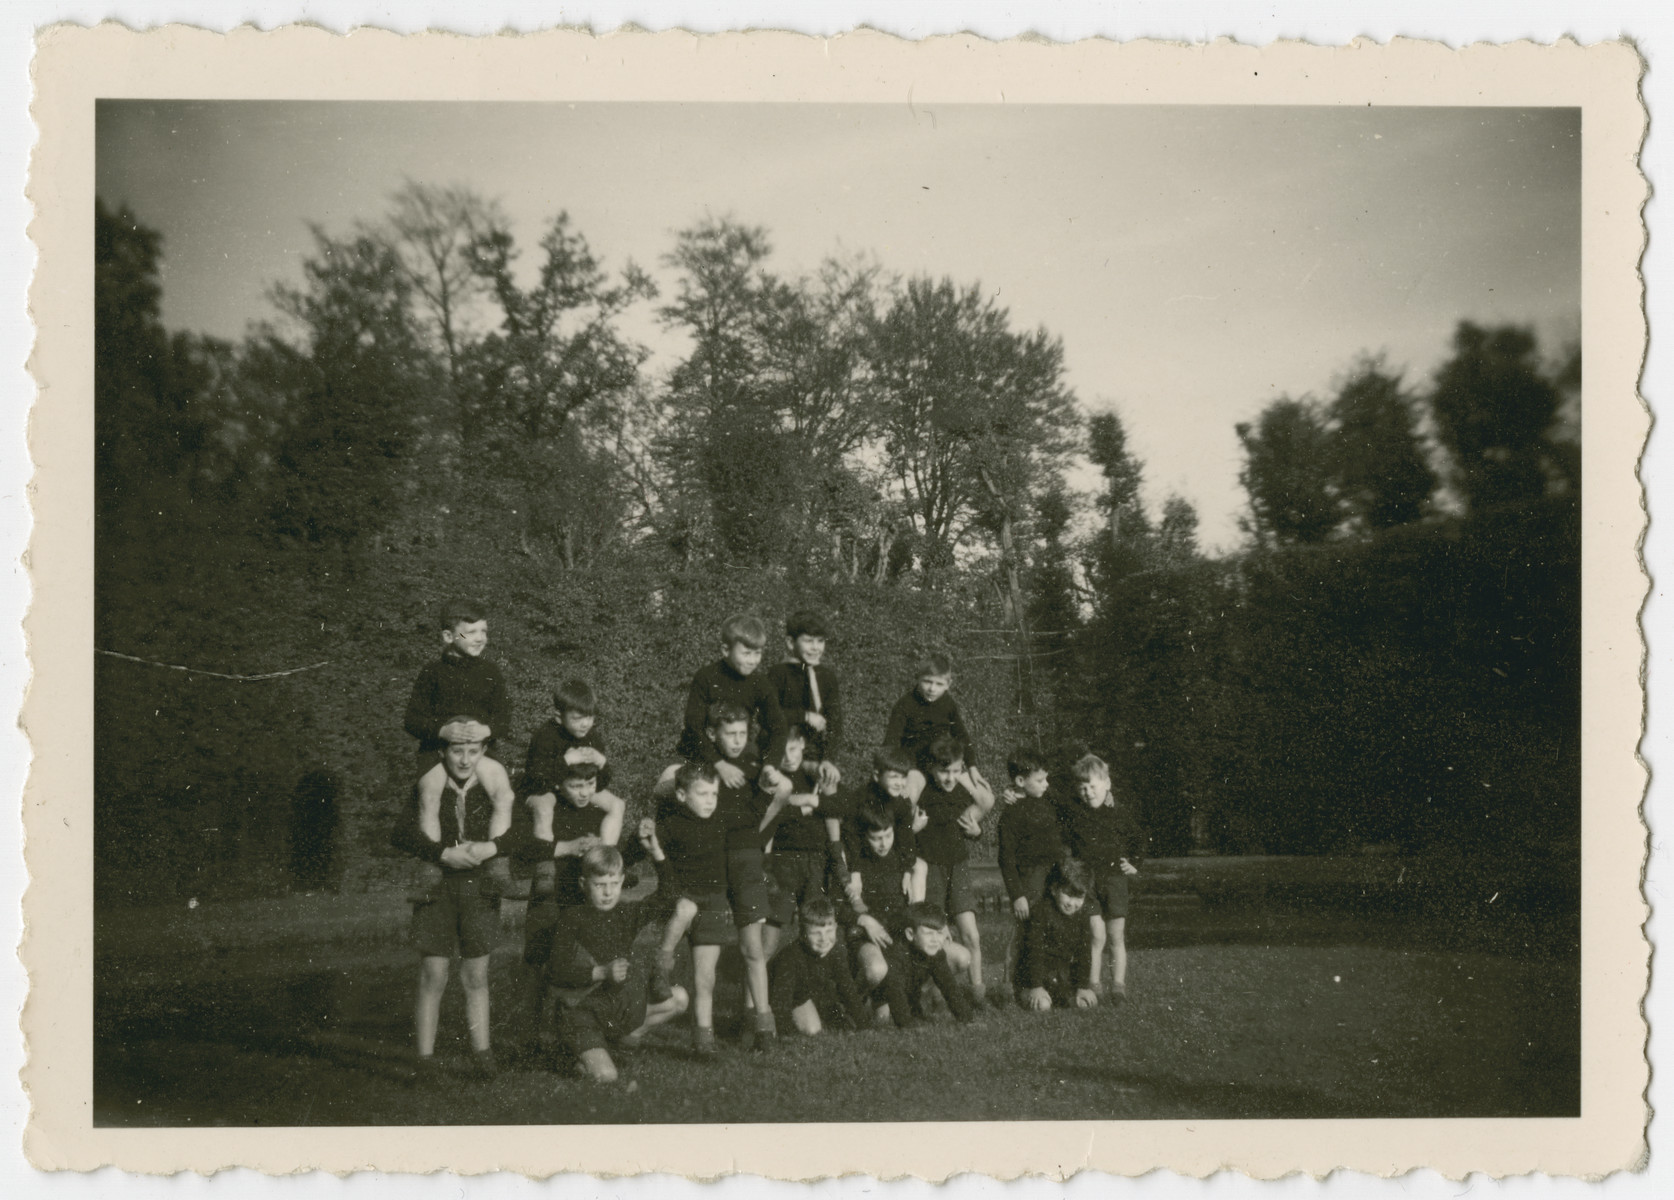 Elementary school boys, many of them Jewish children in hiding, pose on the grounds of the Chateau de Beloeil.